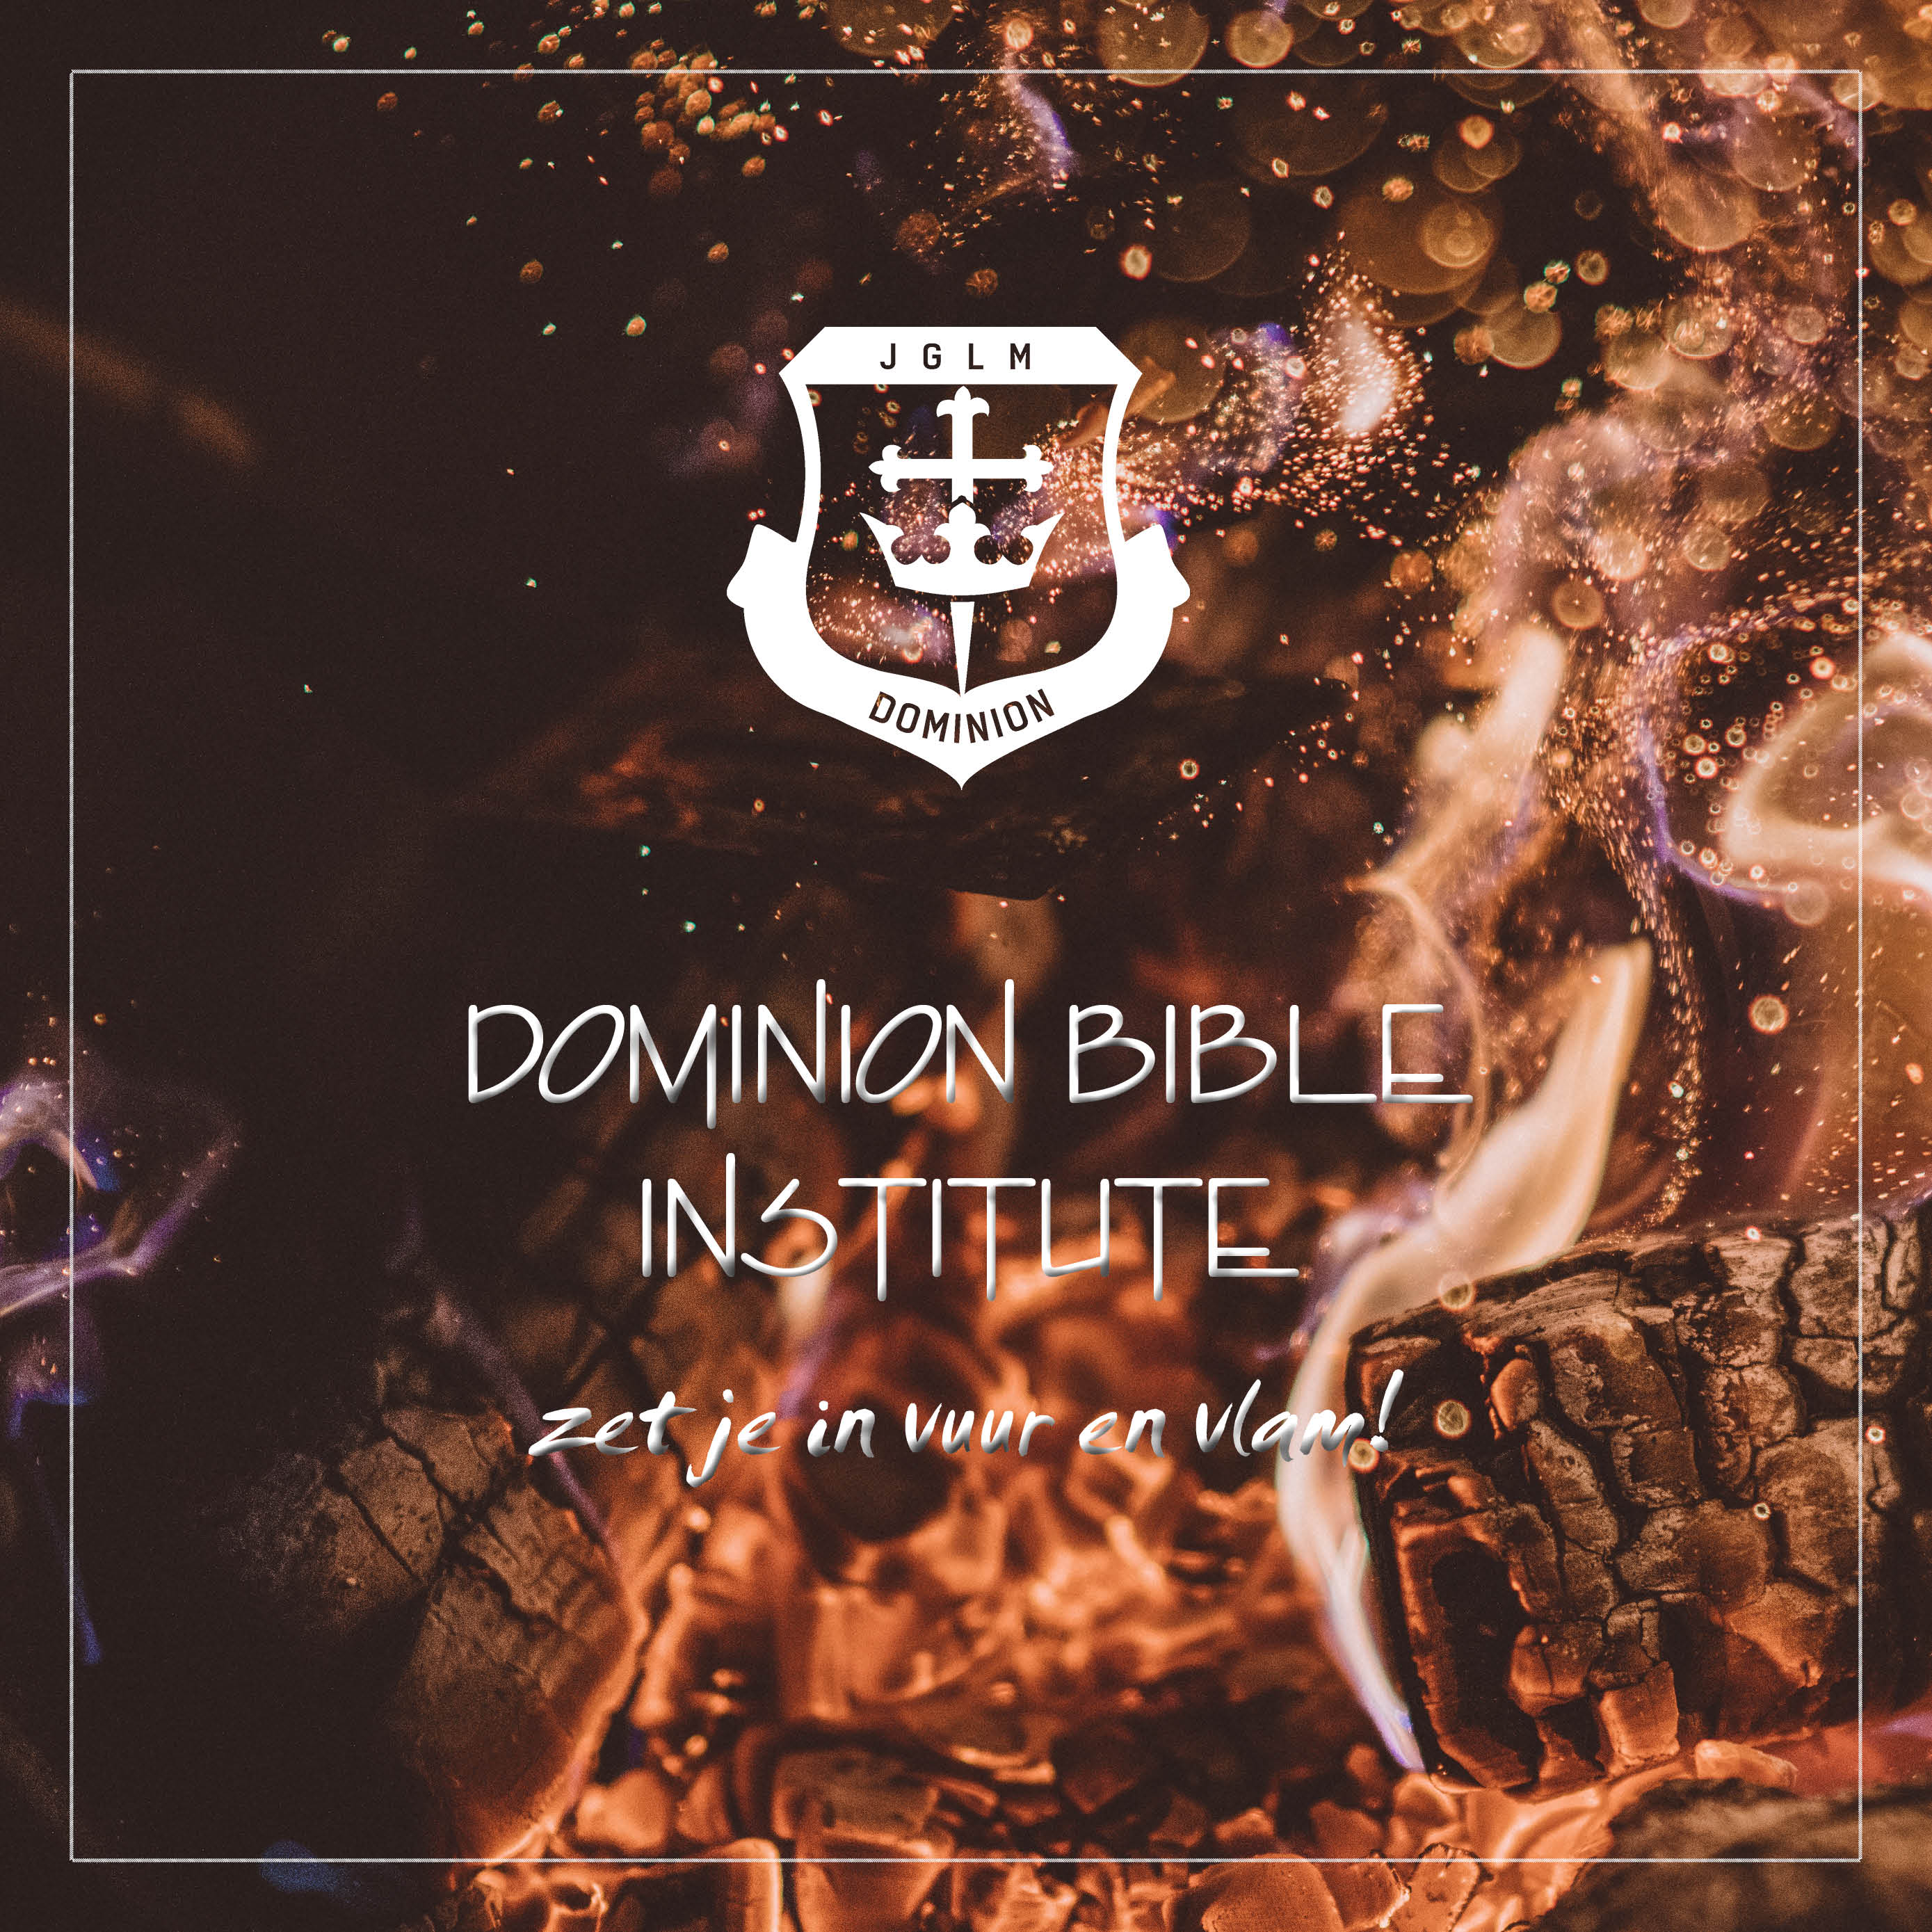 Teaching - Dominion Bible Institute (DBI)